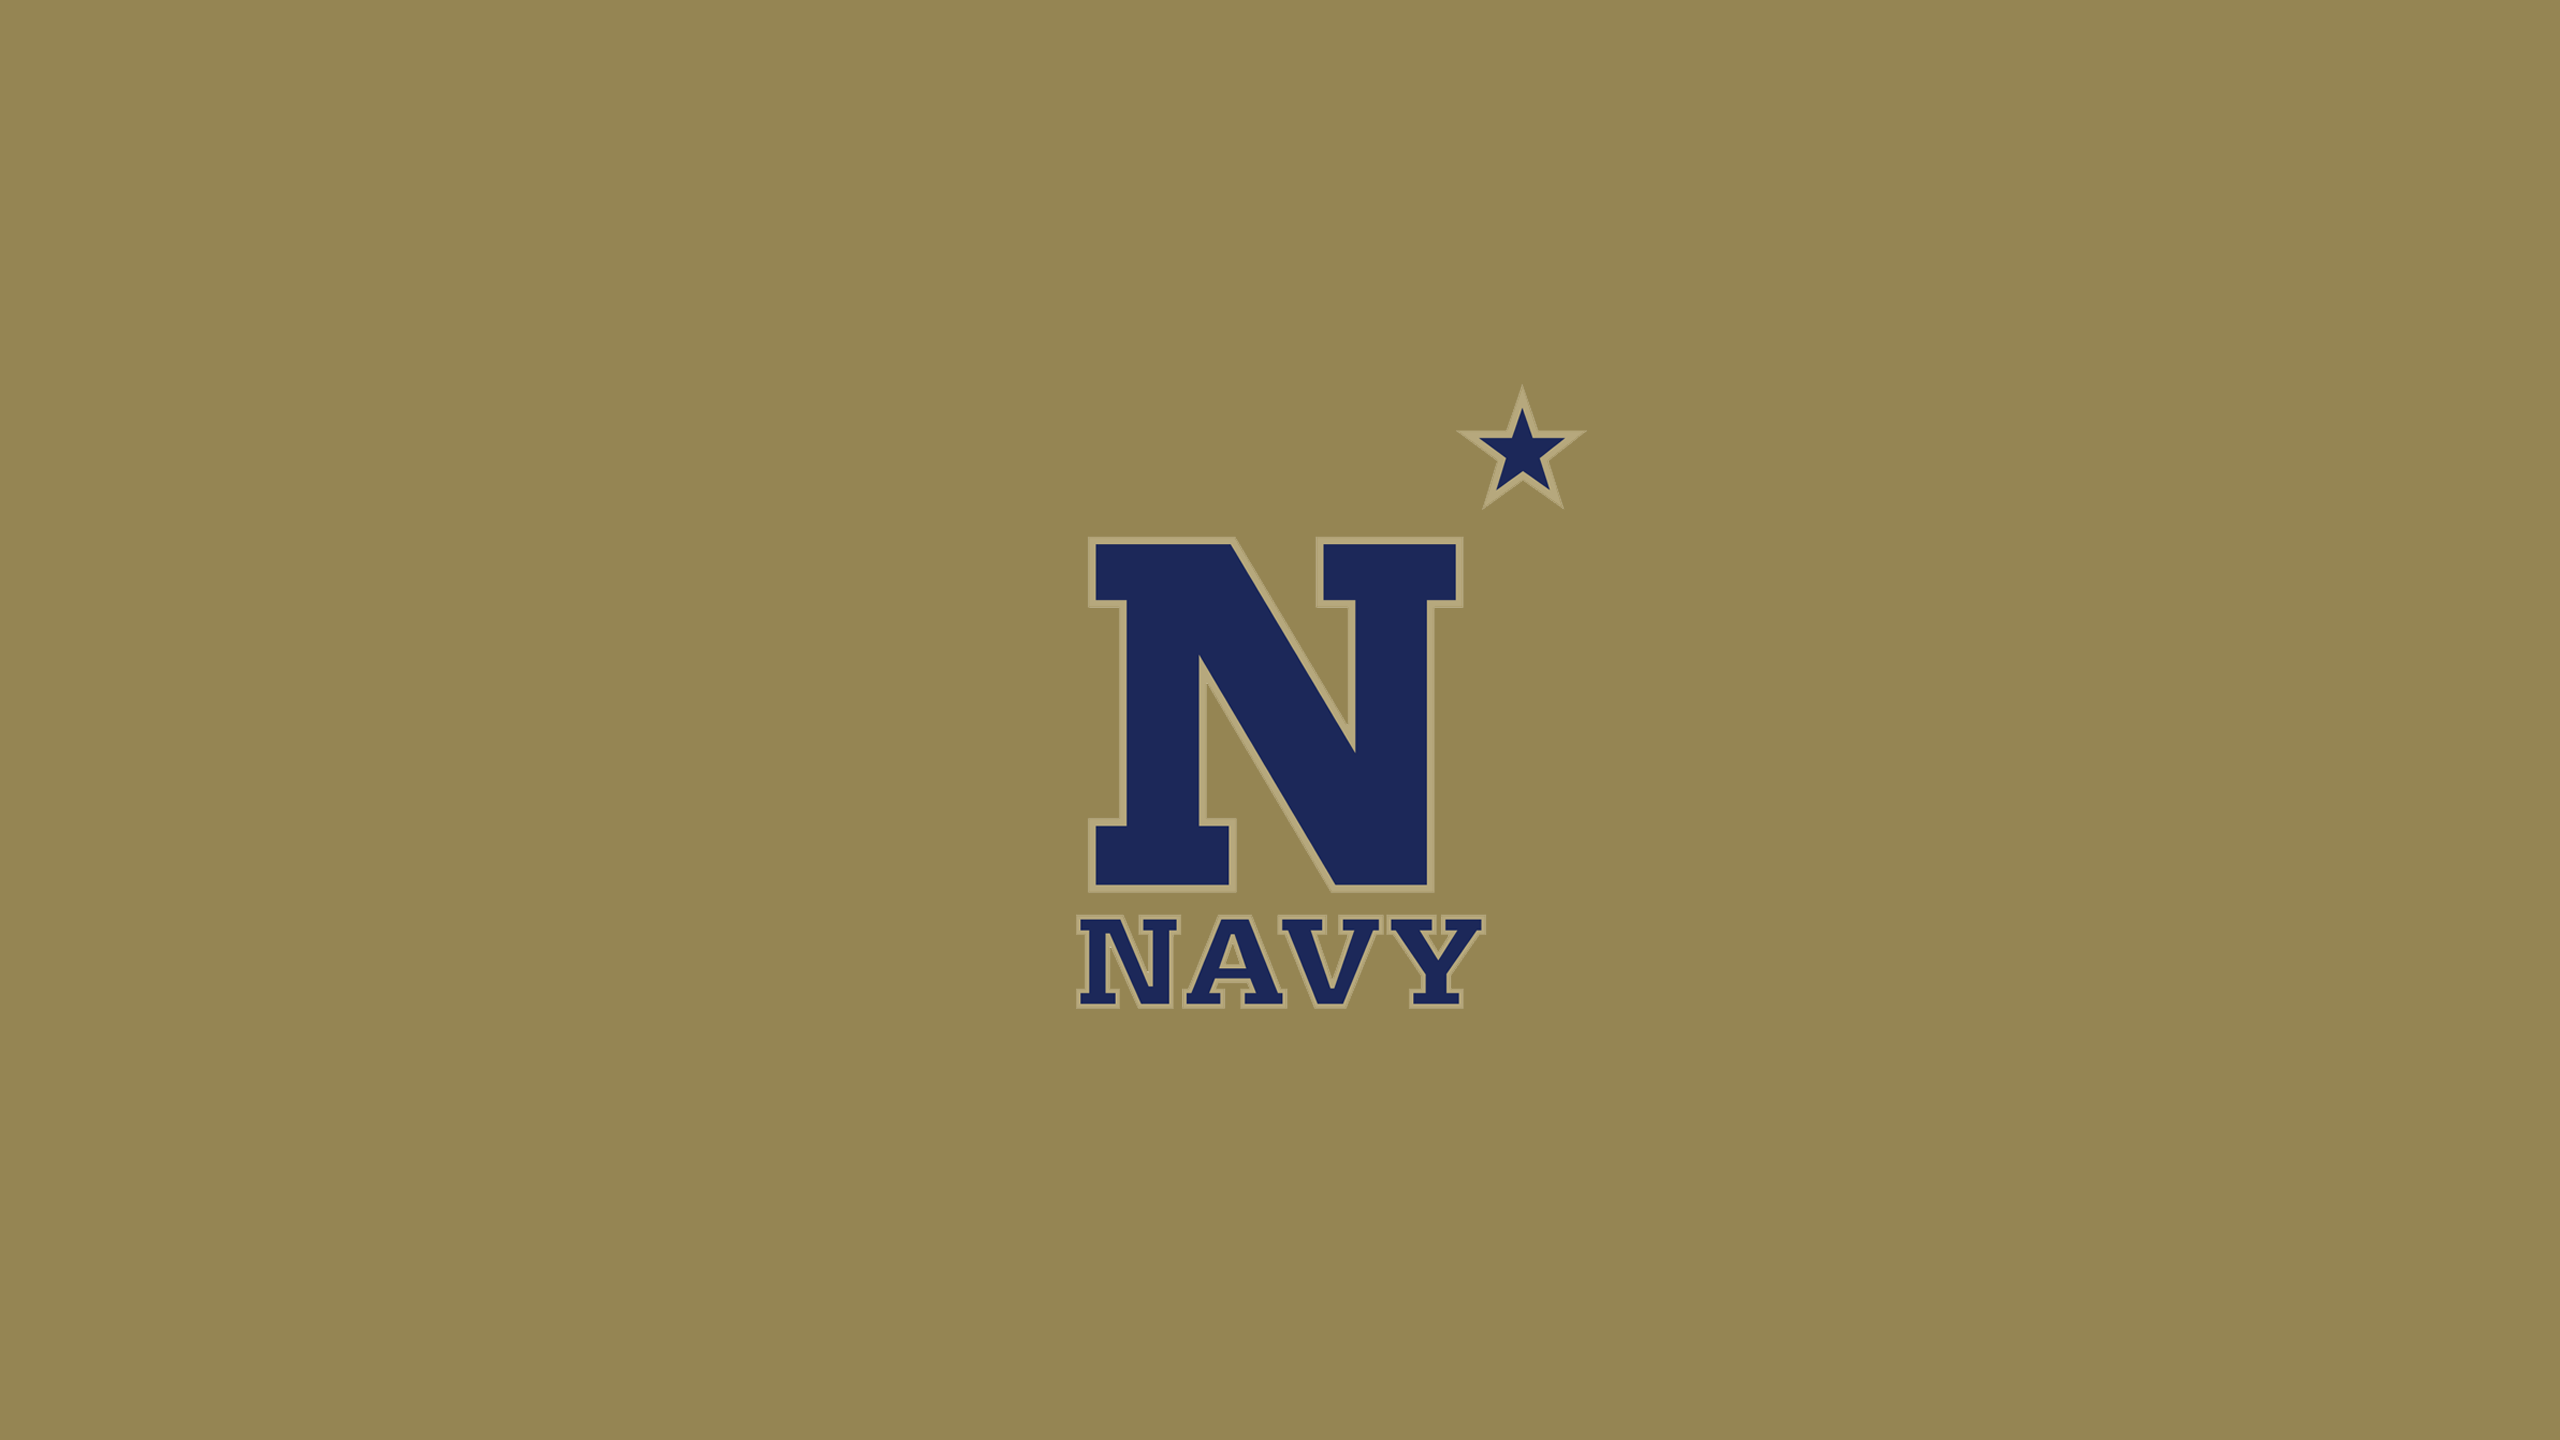 Navy - US Naval Academy